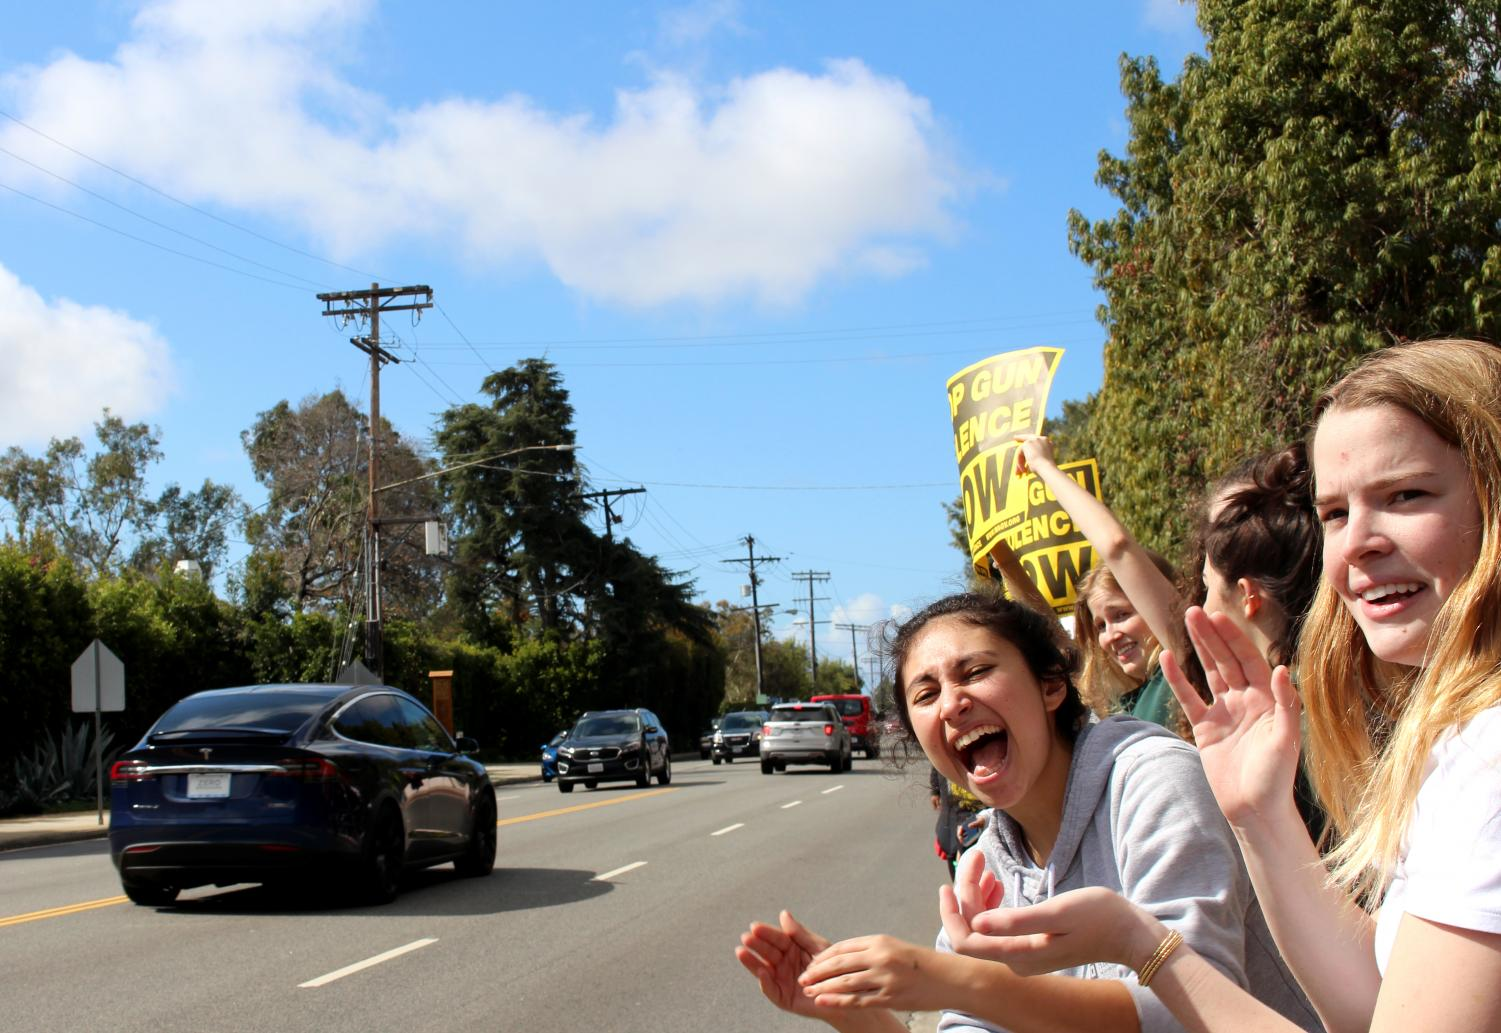 Seniors+Jael+Ellman+and+Gracie+Marx+shout+during+the+protest.+Many+cars+sounded+their+horns+in+solidarity.